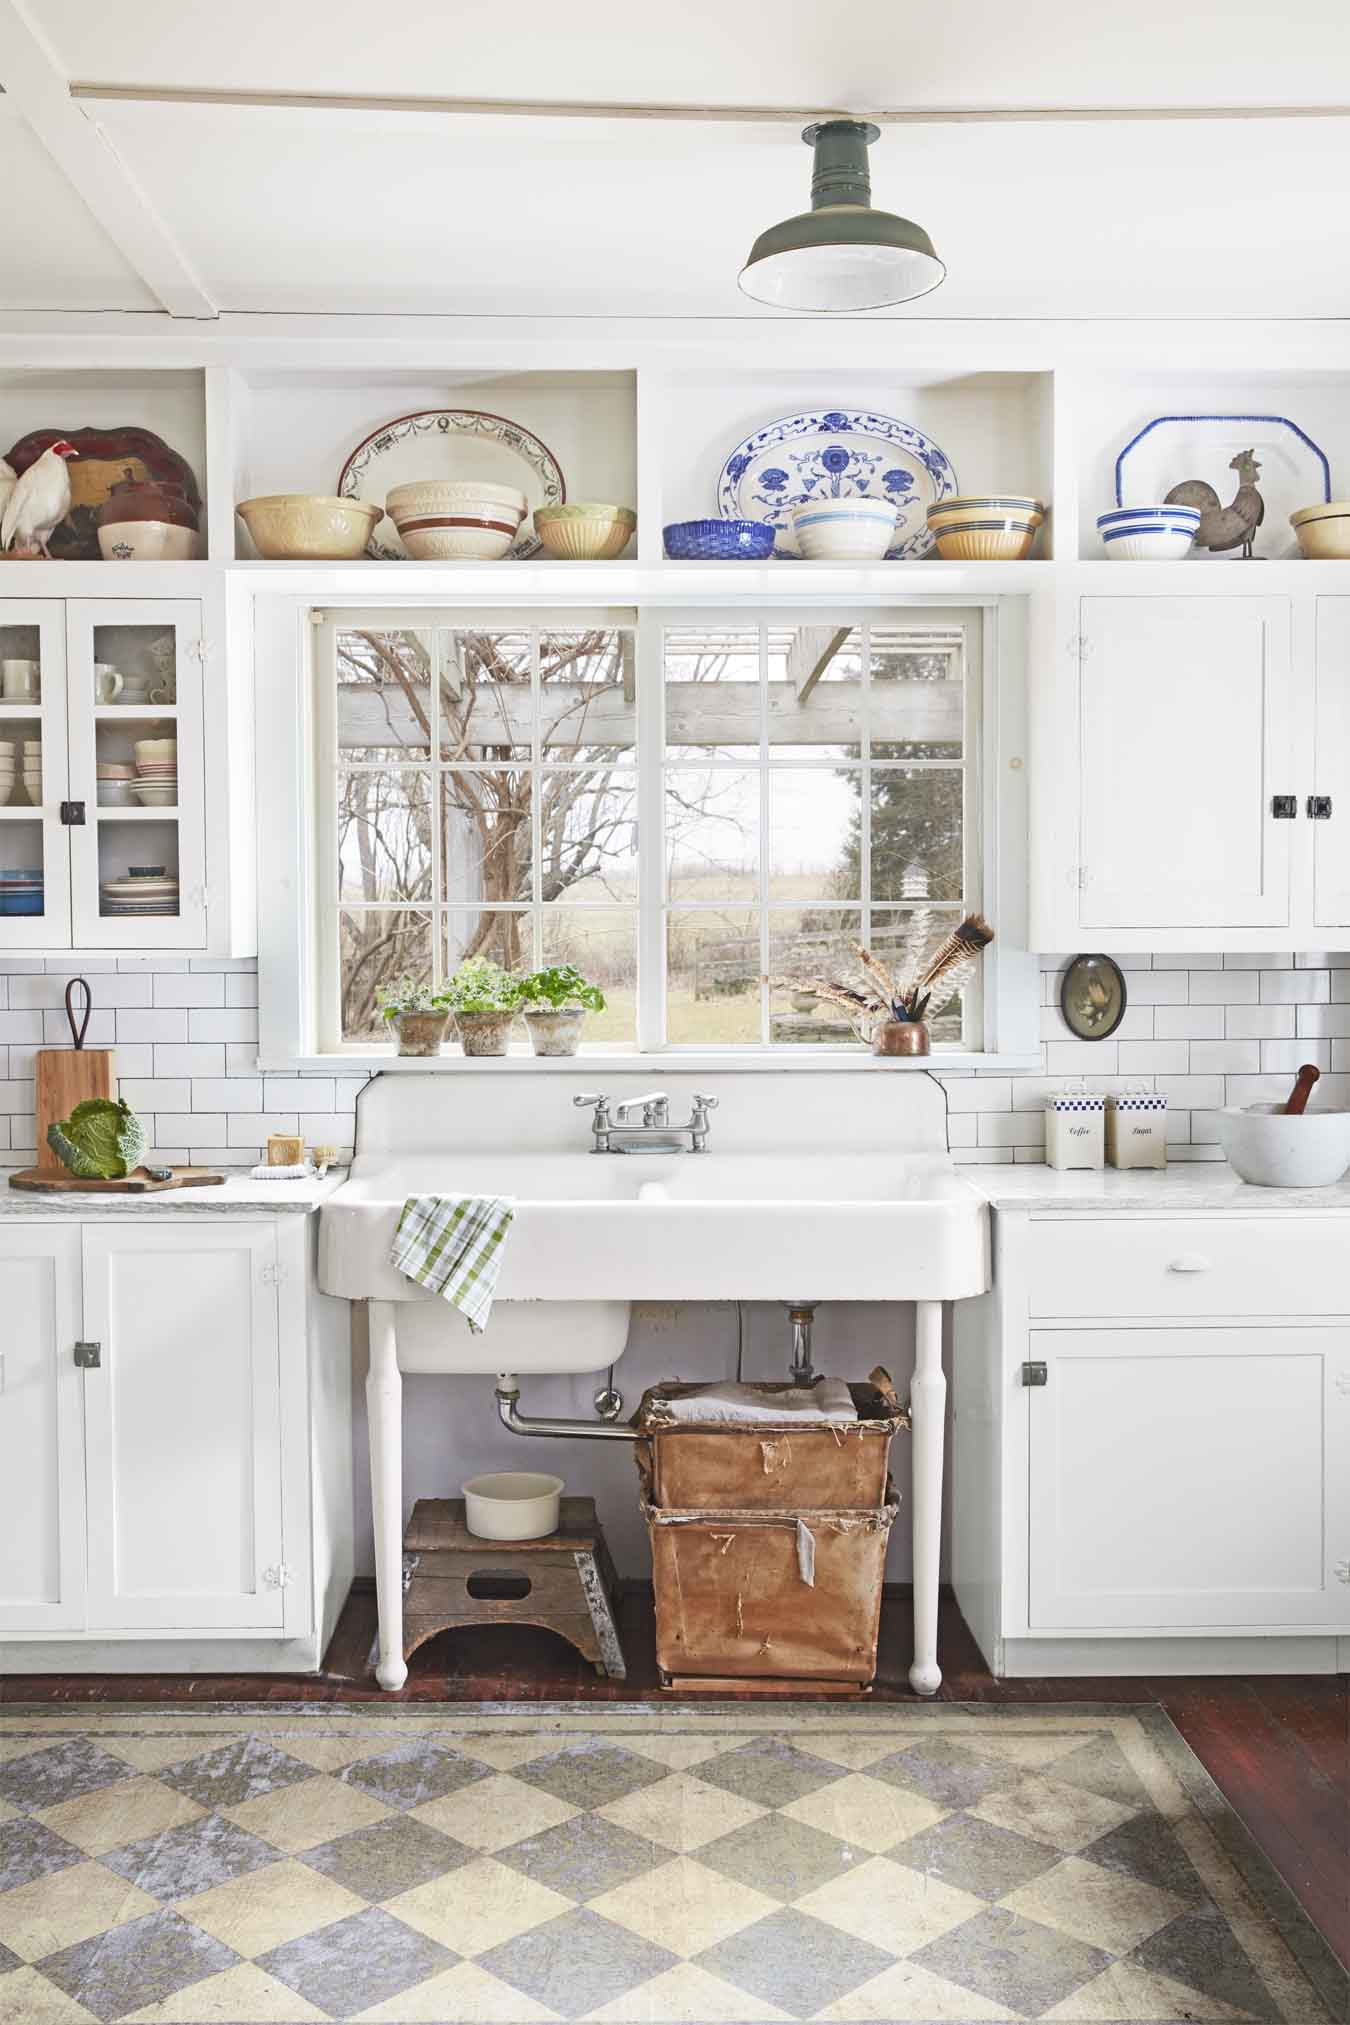 20 vintage kitchen decorating ideas design inspiration for Classic kitchen decor